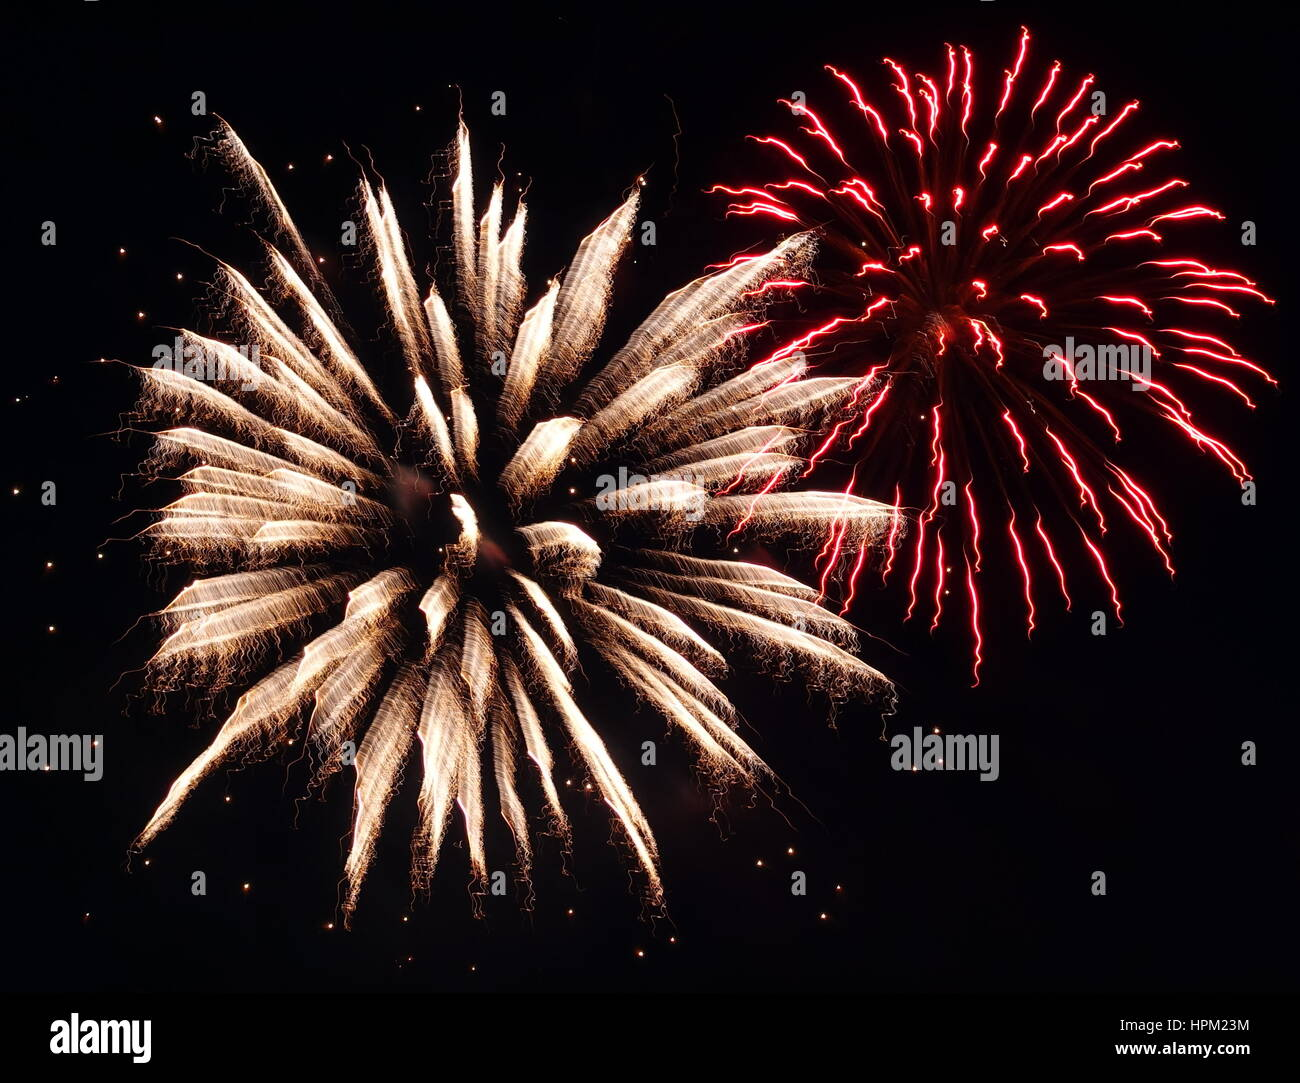 Fire Works For Canada Day In Cranbrook, BC - Stock Image